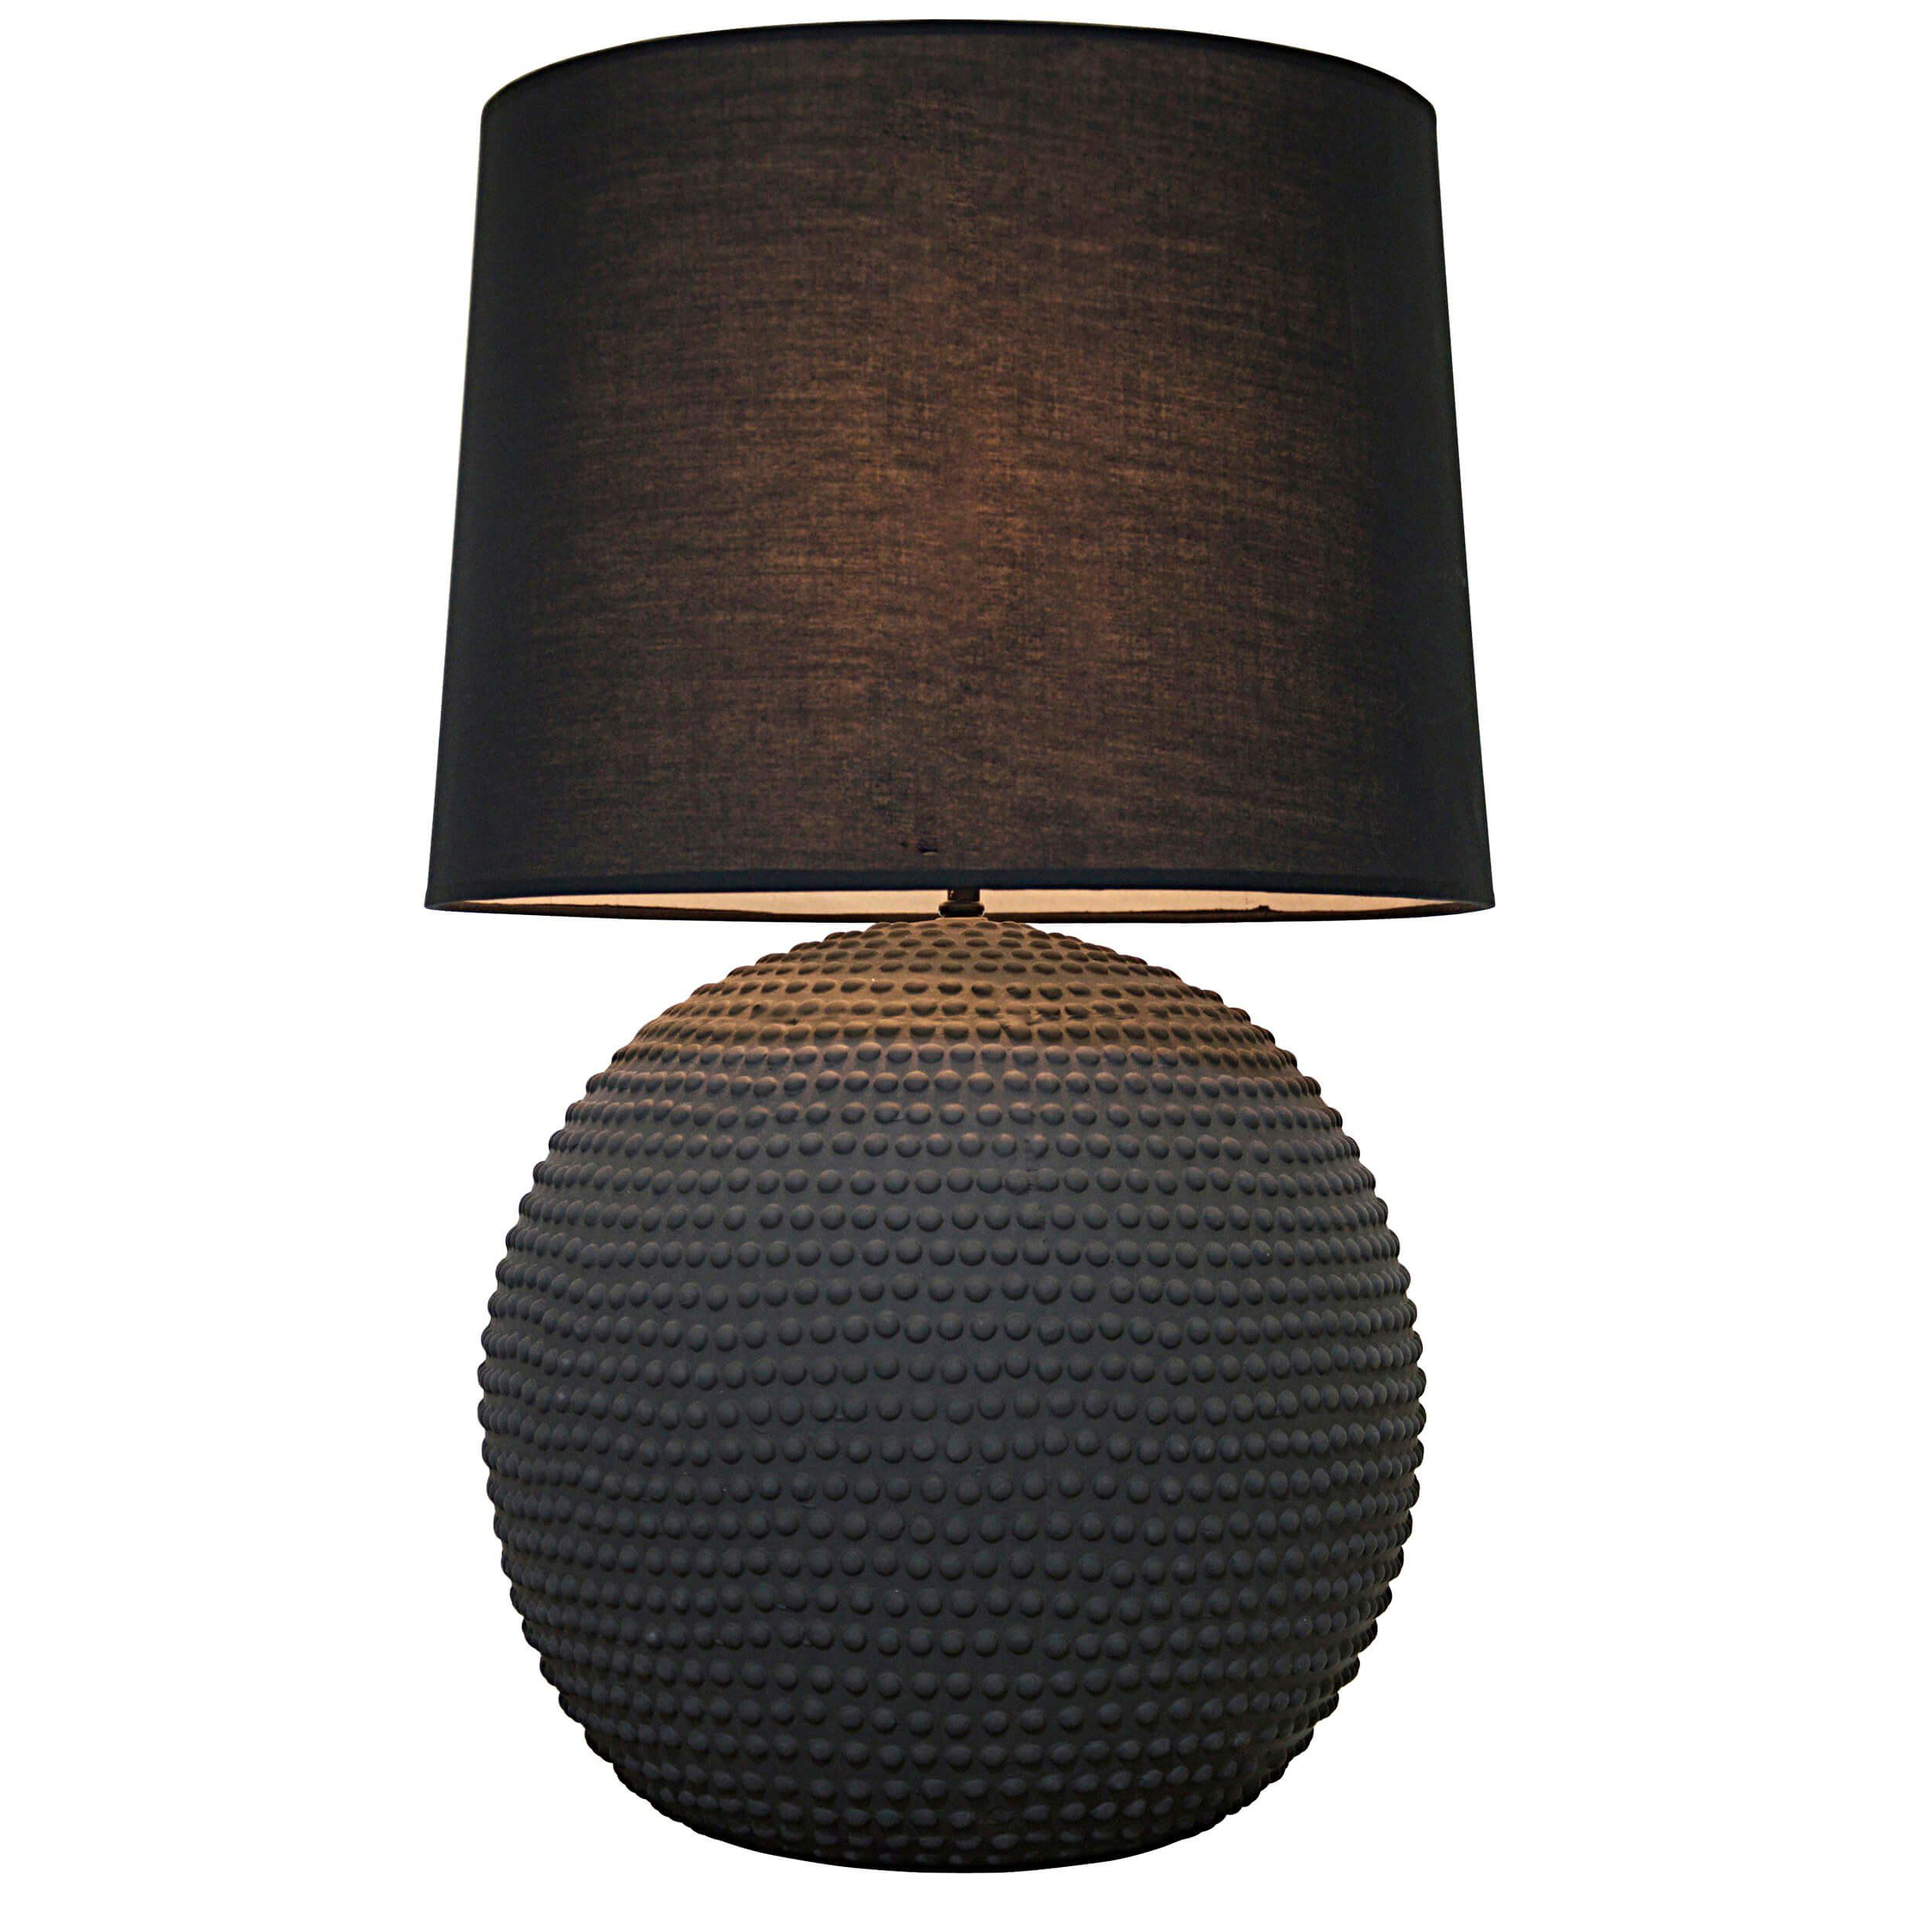 Urchin Table Lamp Large Small Available As Well Made By Noir Sold By High Fashion Home Lamp Table Lamp Black Lamps